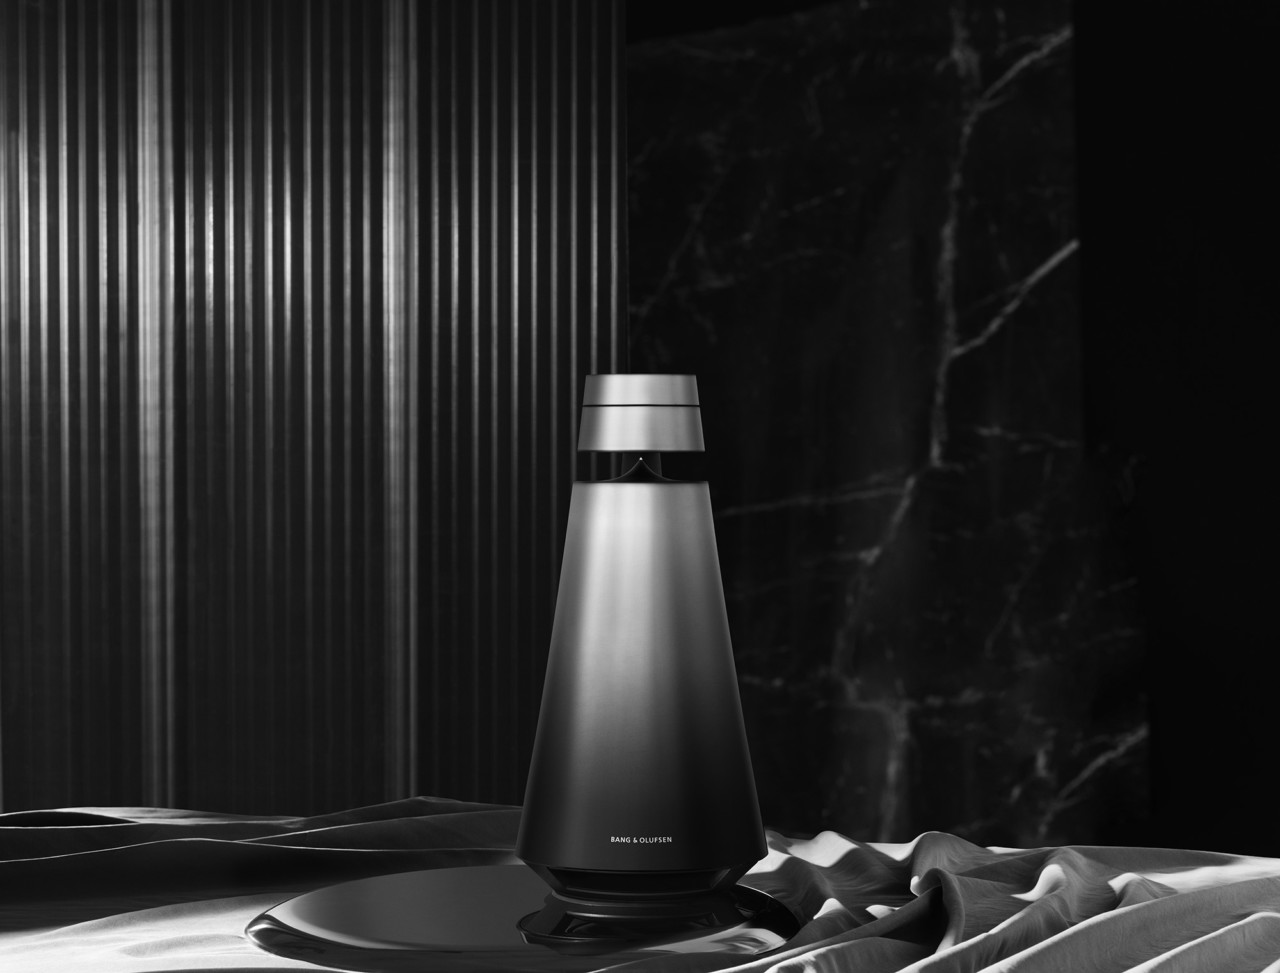 This Limited Edition Beosound 1 Is Designed to Evoke the New York Skyline